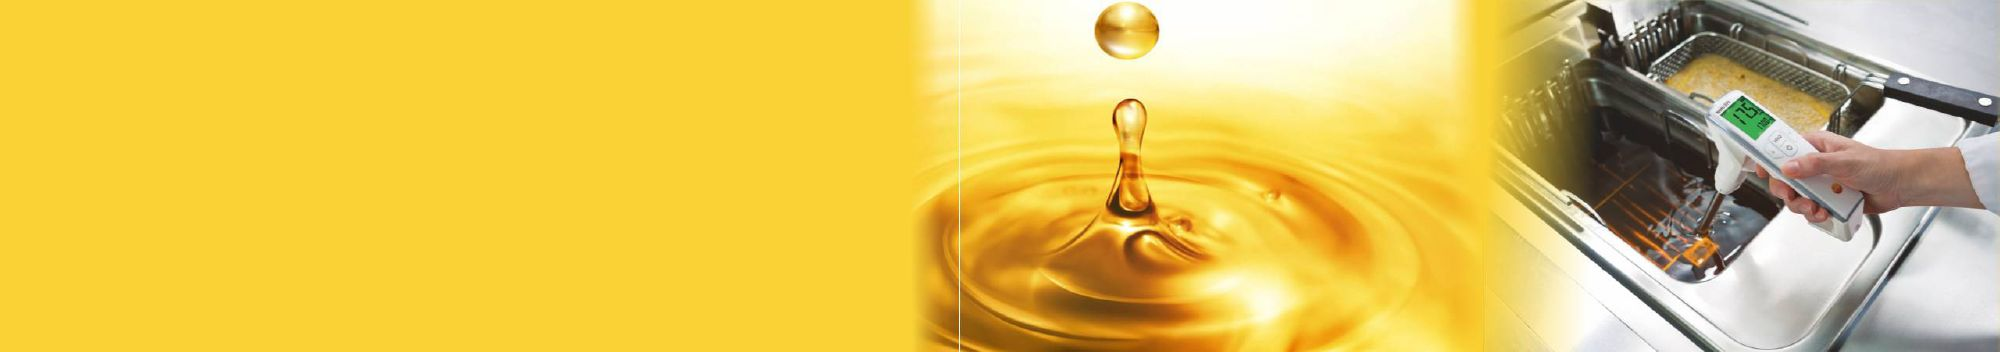 """<p><span style=""""font-size: x-large;"""">Is your cooking oil quality compliant with <strong>FSSAI</strong> norms?</span></p><div>&nbsp;</div>"""